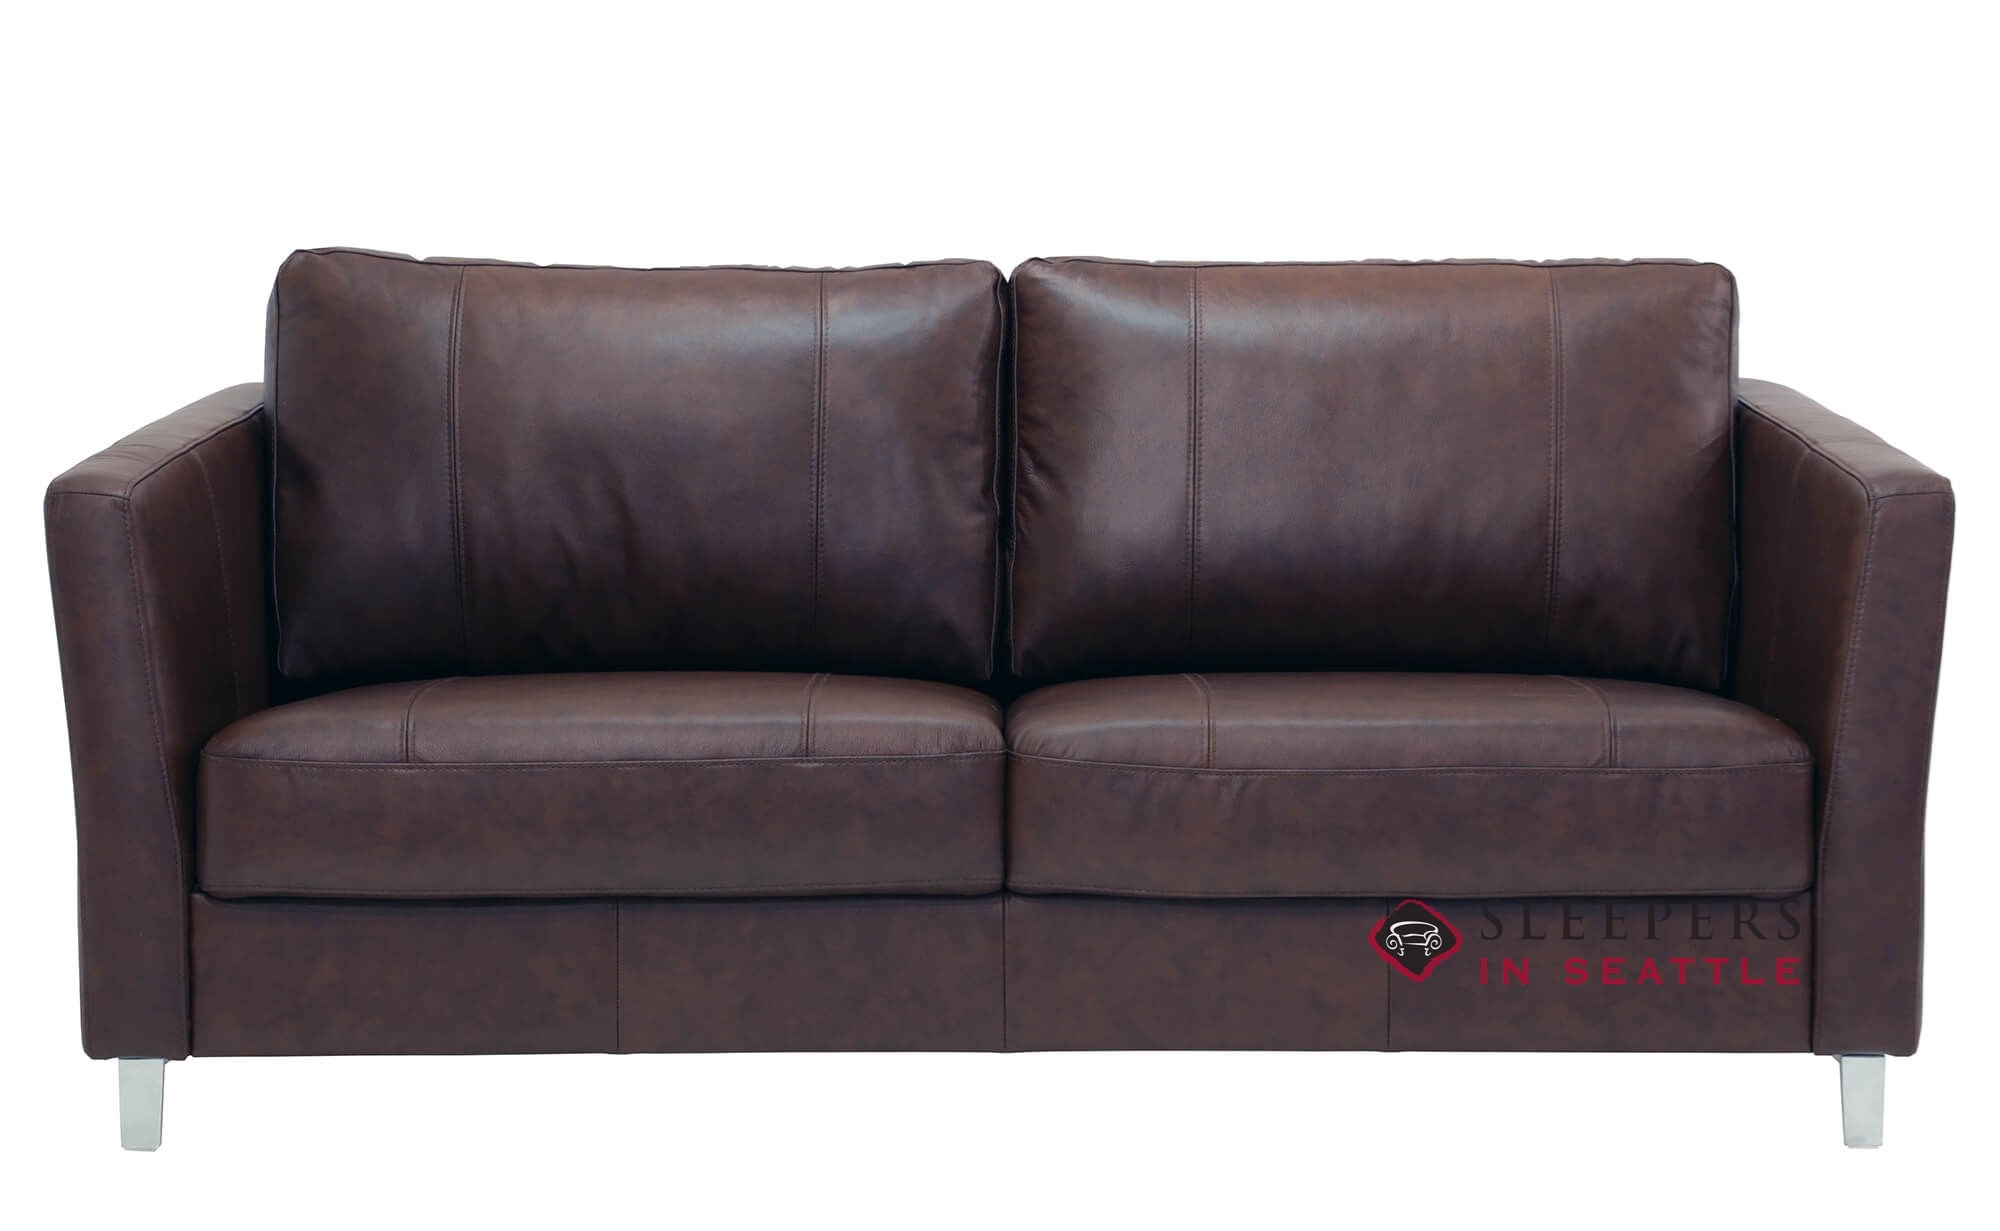 Luonto Monika Queen Leather Sleeper Sofa